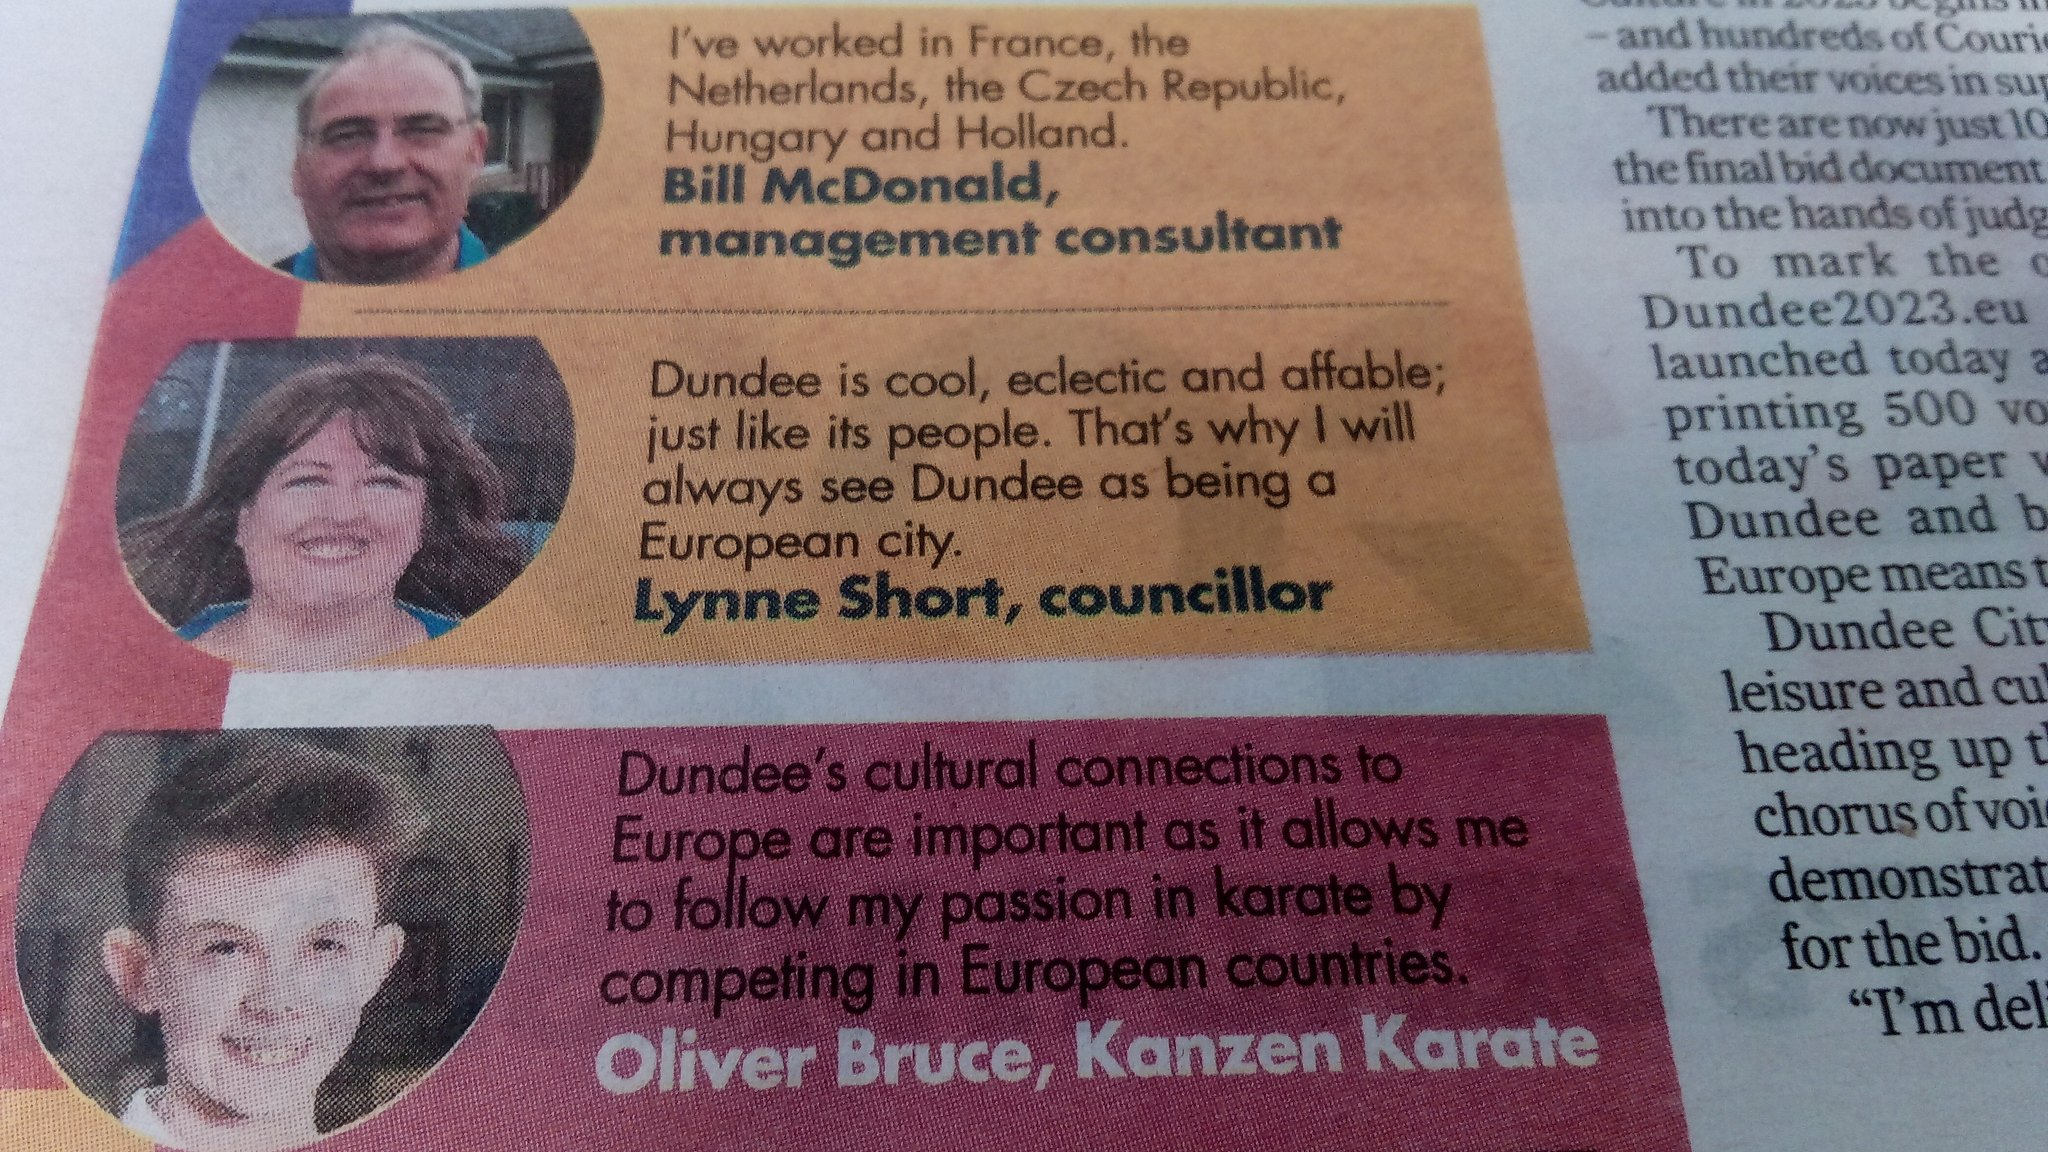 #dundee2023 Dundee is cool, eclectic & affable, just like its people.  That's why I will always see Dundee as being a European city! https://t.co/kHilKCyz5E